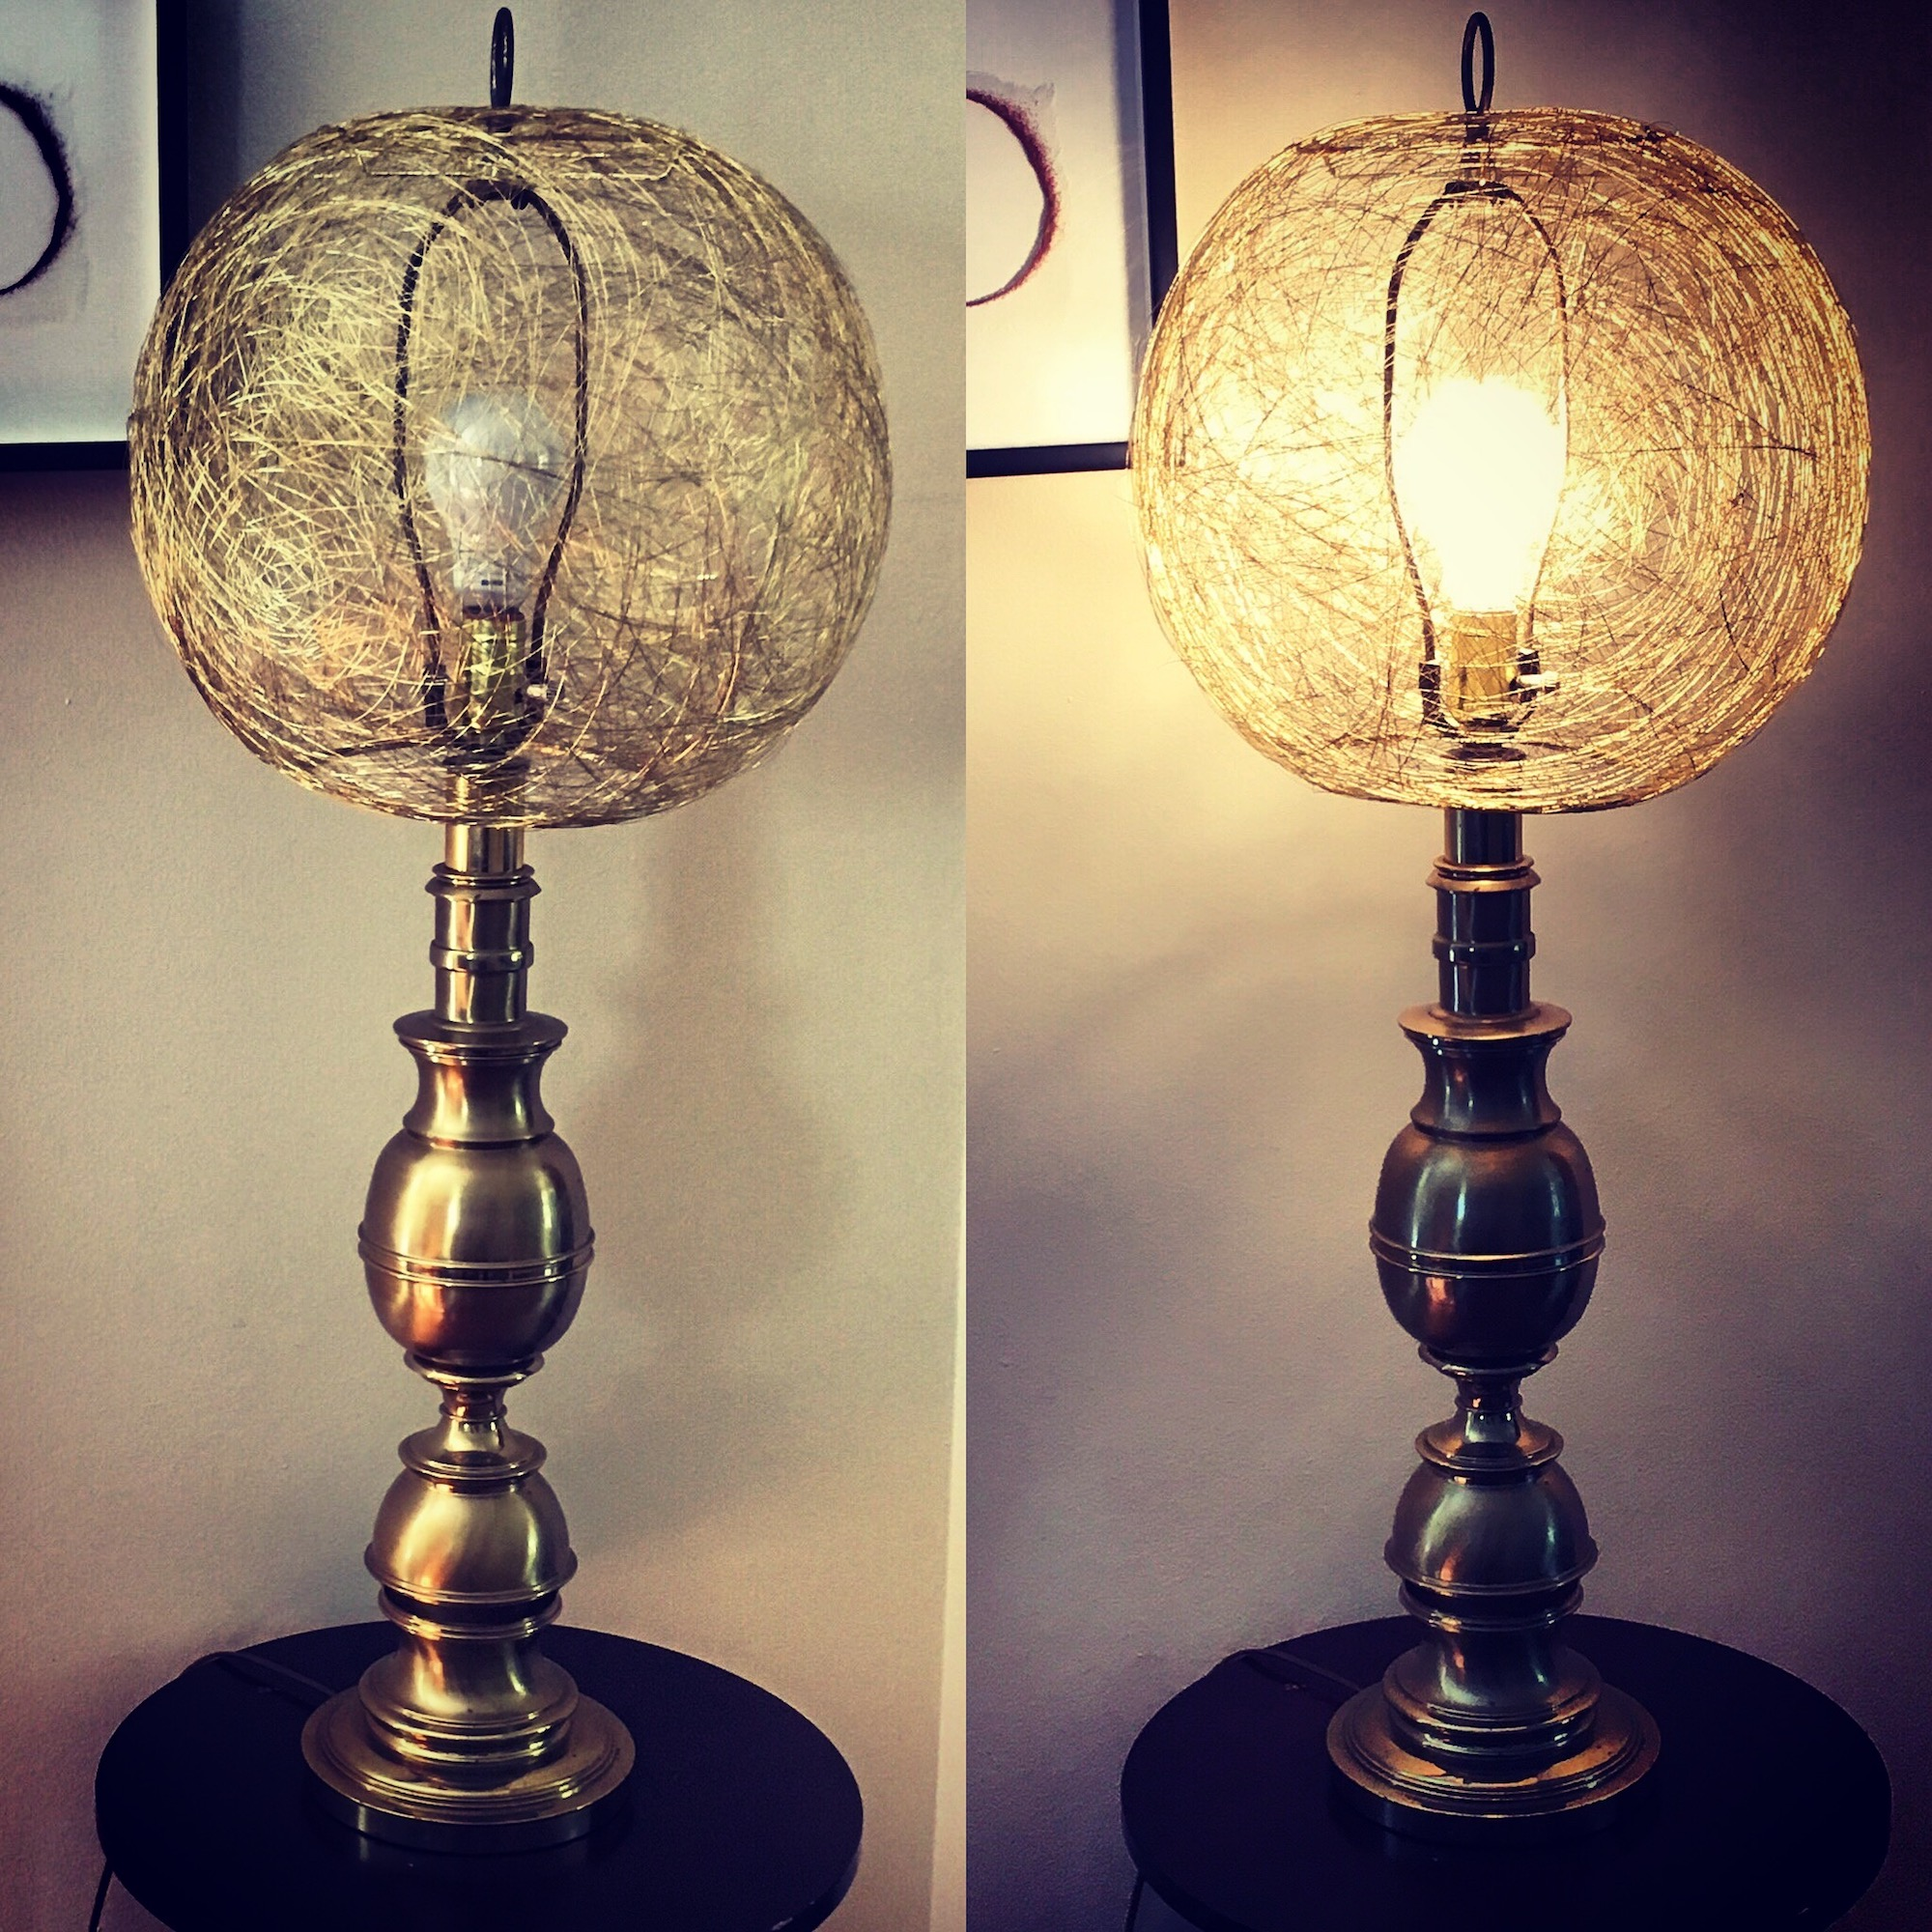 edm-wire-table-lamp2.jpg